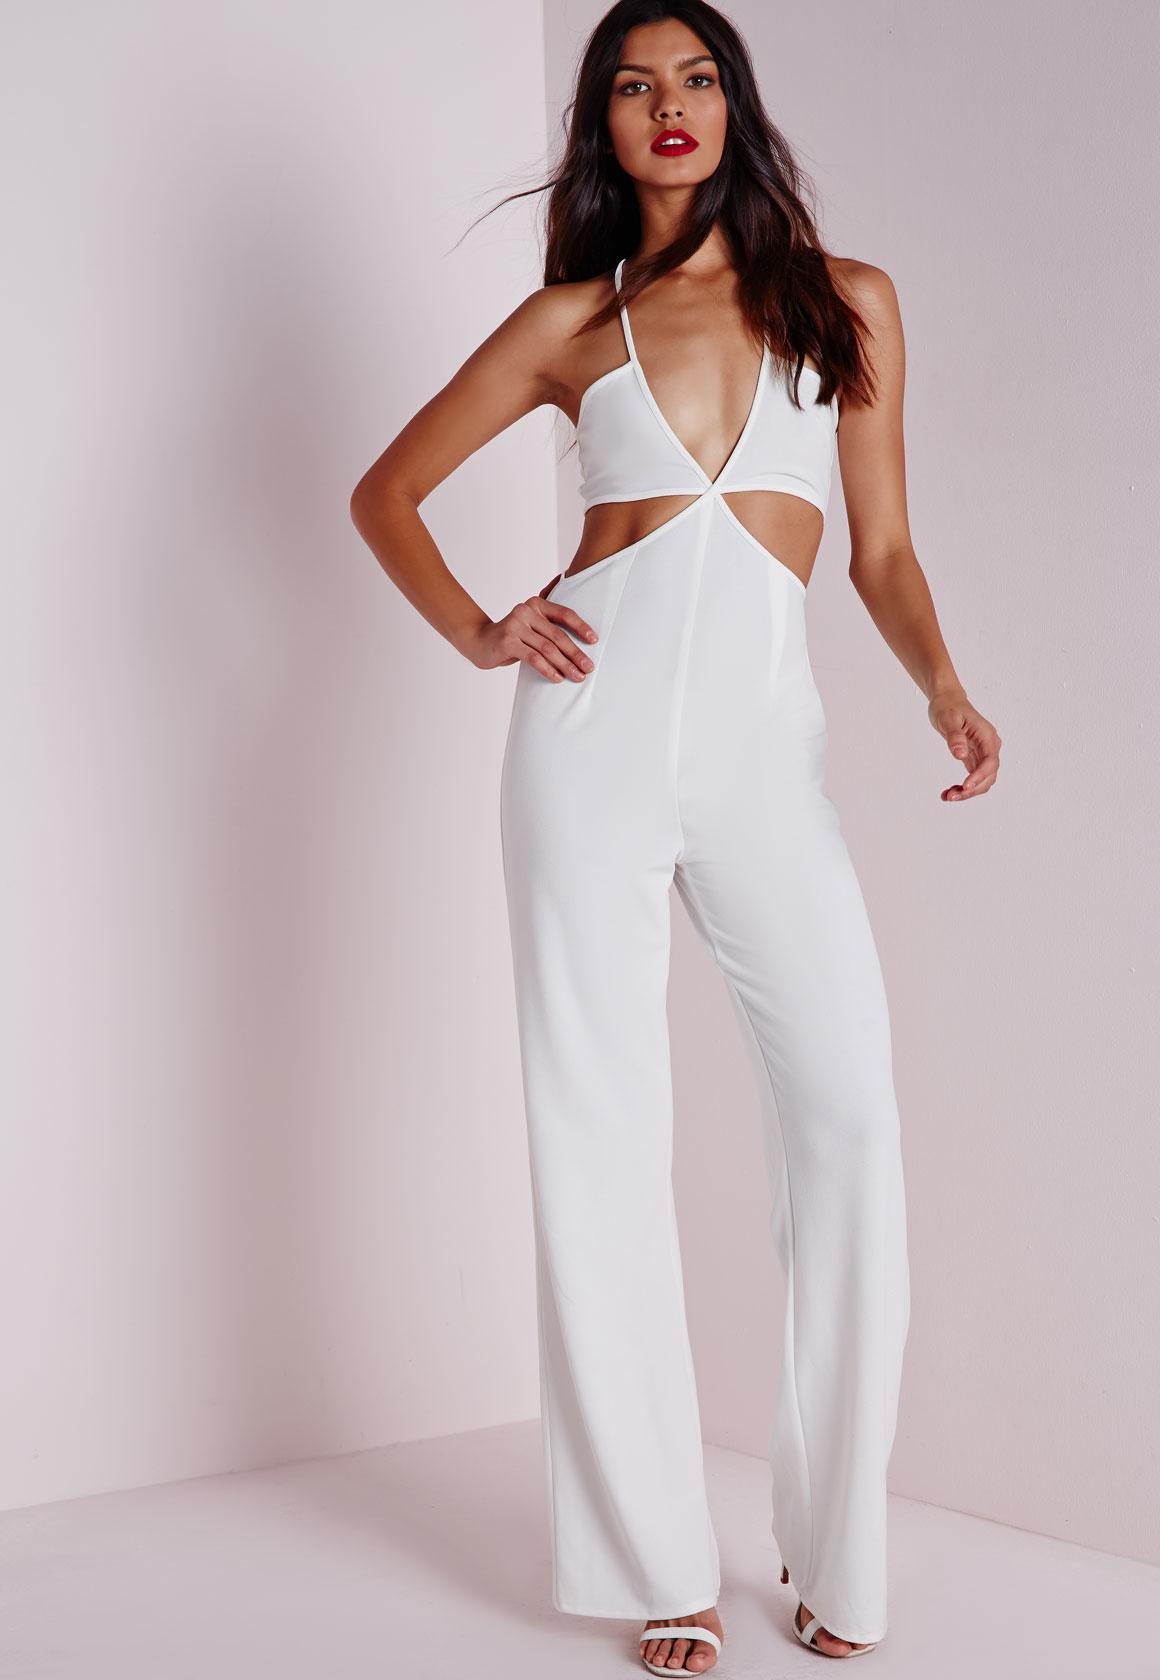 463e54b51d32 Missguided Strappy Plunge Cut Out Jumpsuit White in White - Lyst